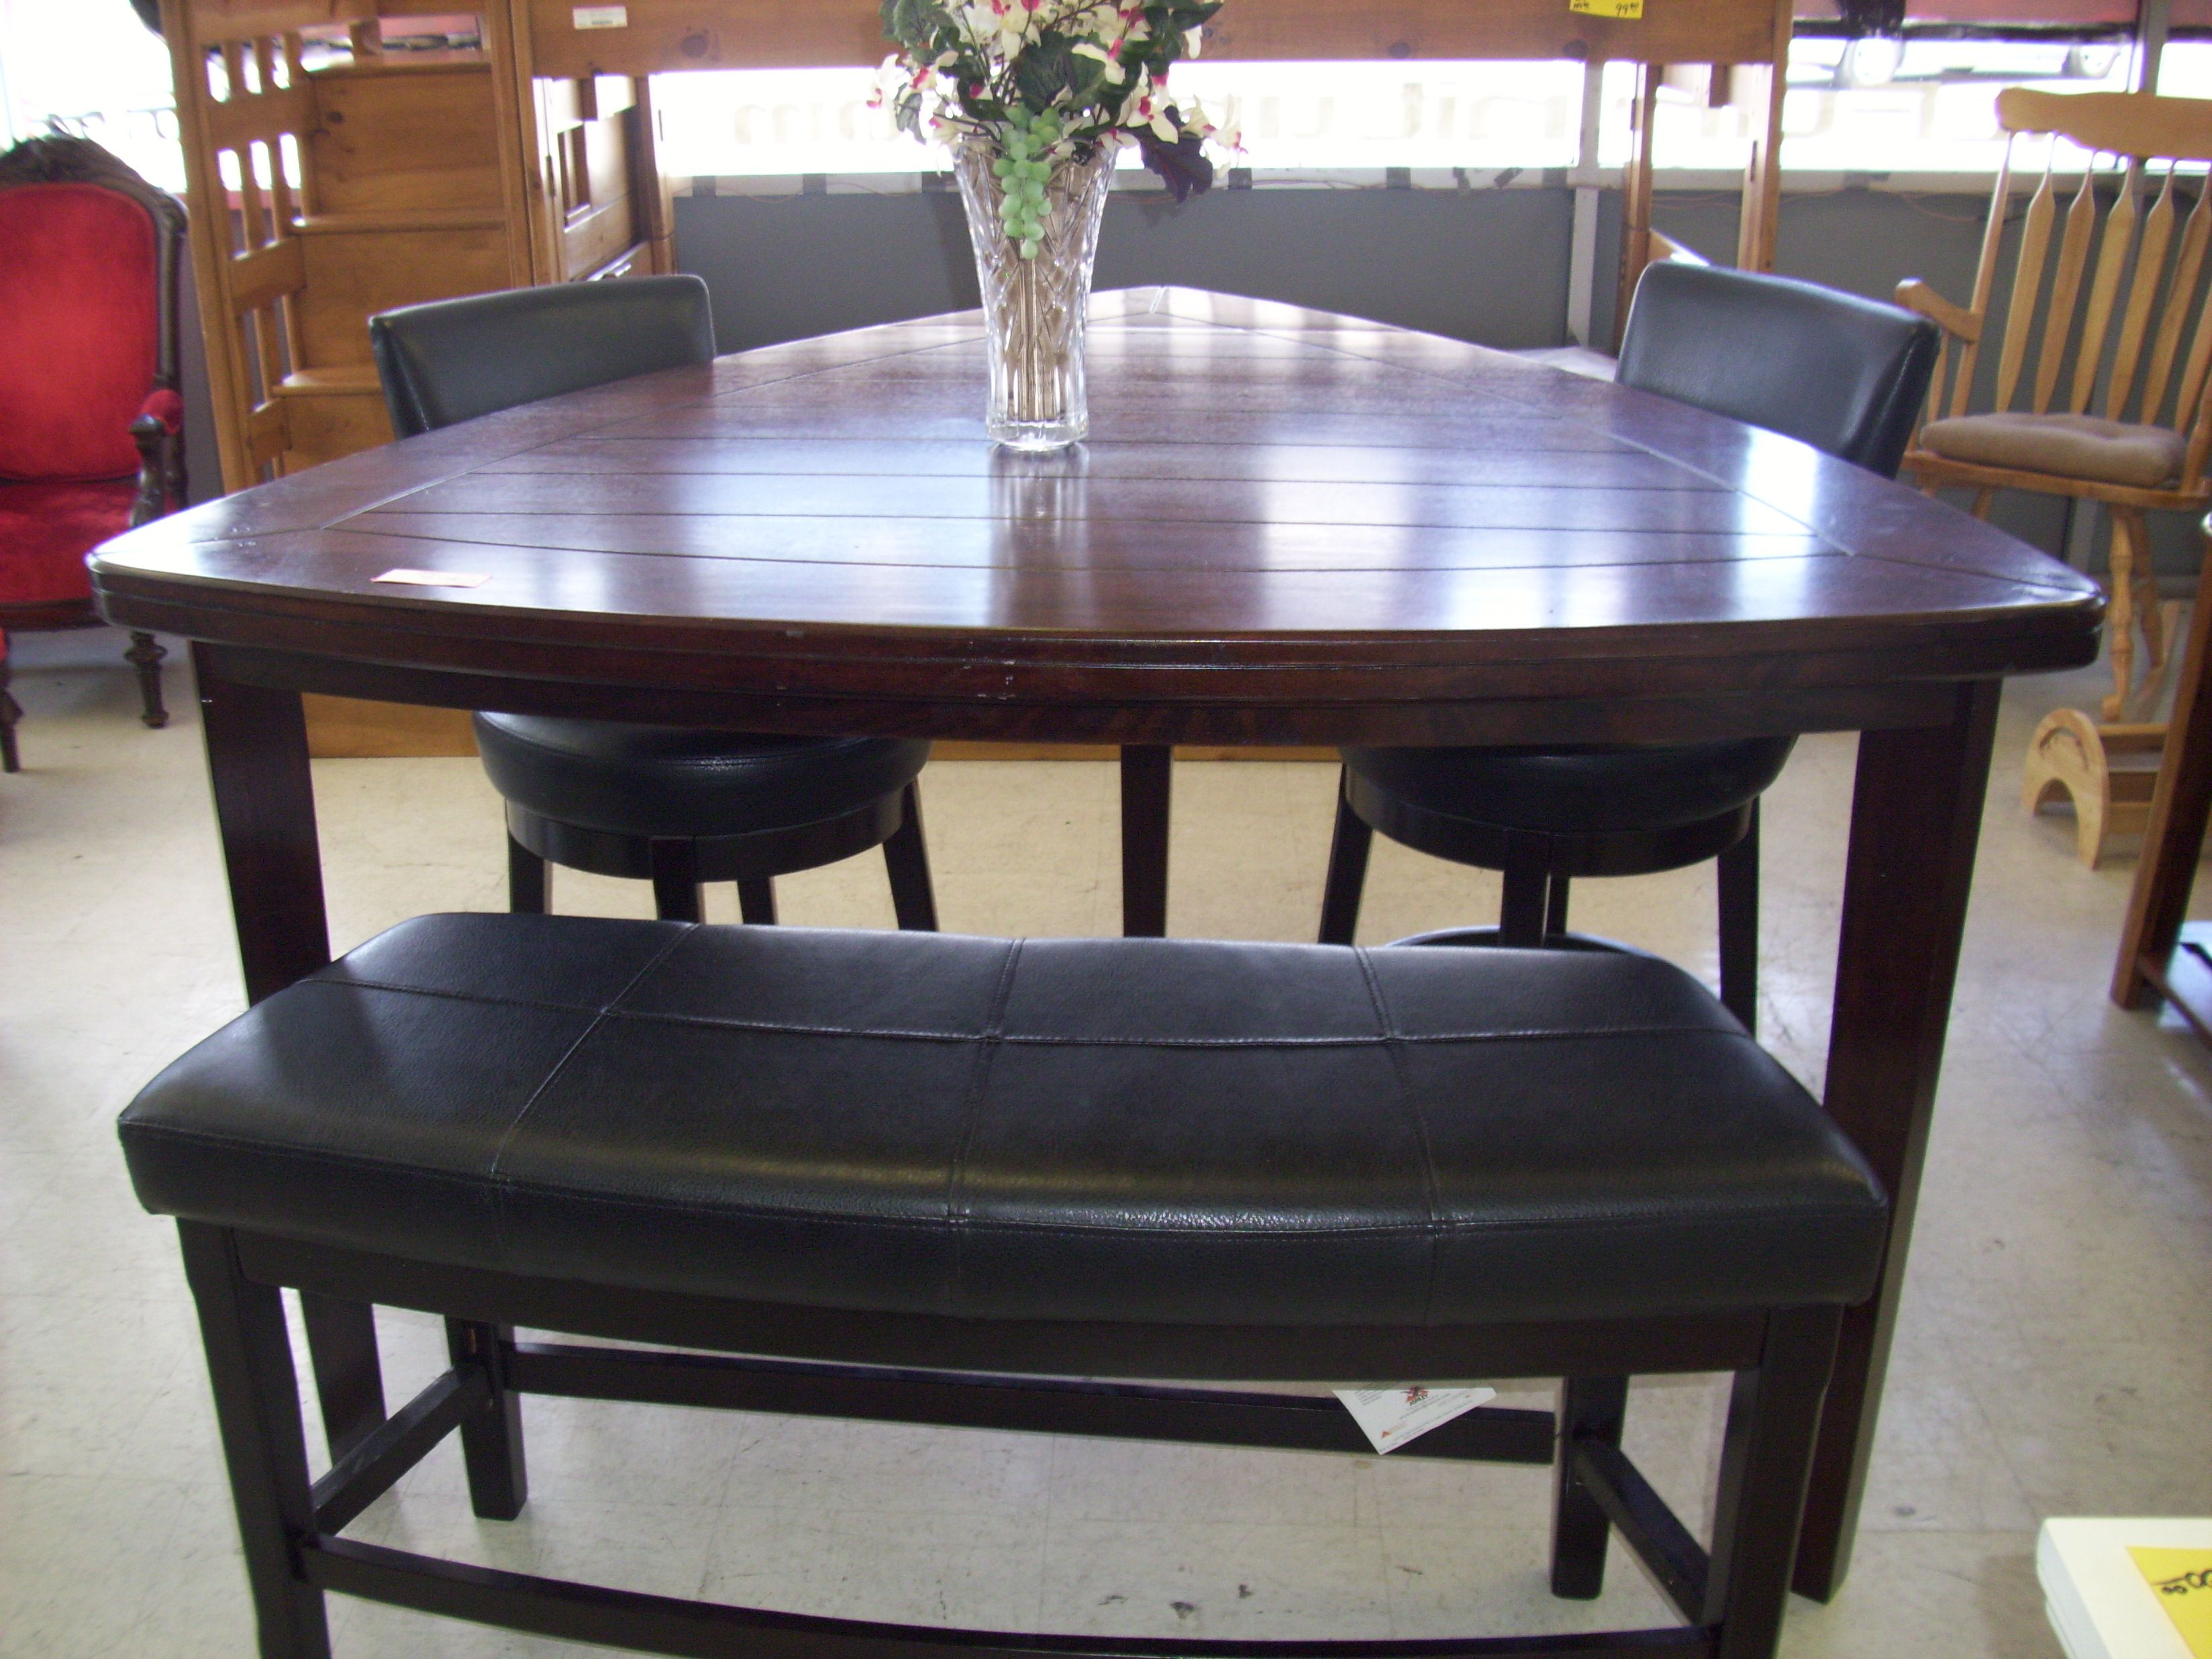 Brilliant 4 Piece Triangle Pub Table Sold Consignment Furniture Home Interior And Landscaping Dextoversignezvosmurscom